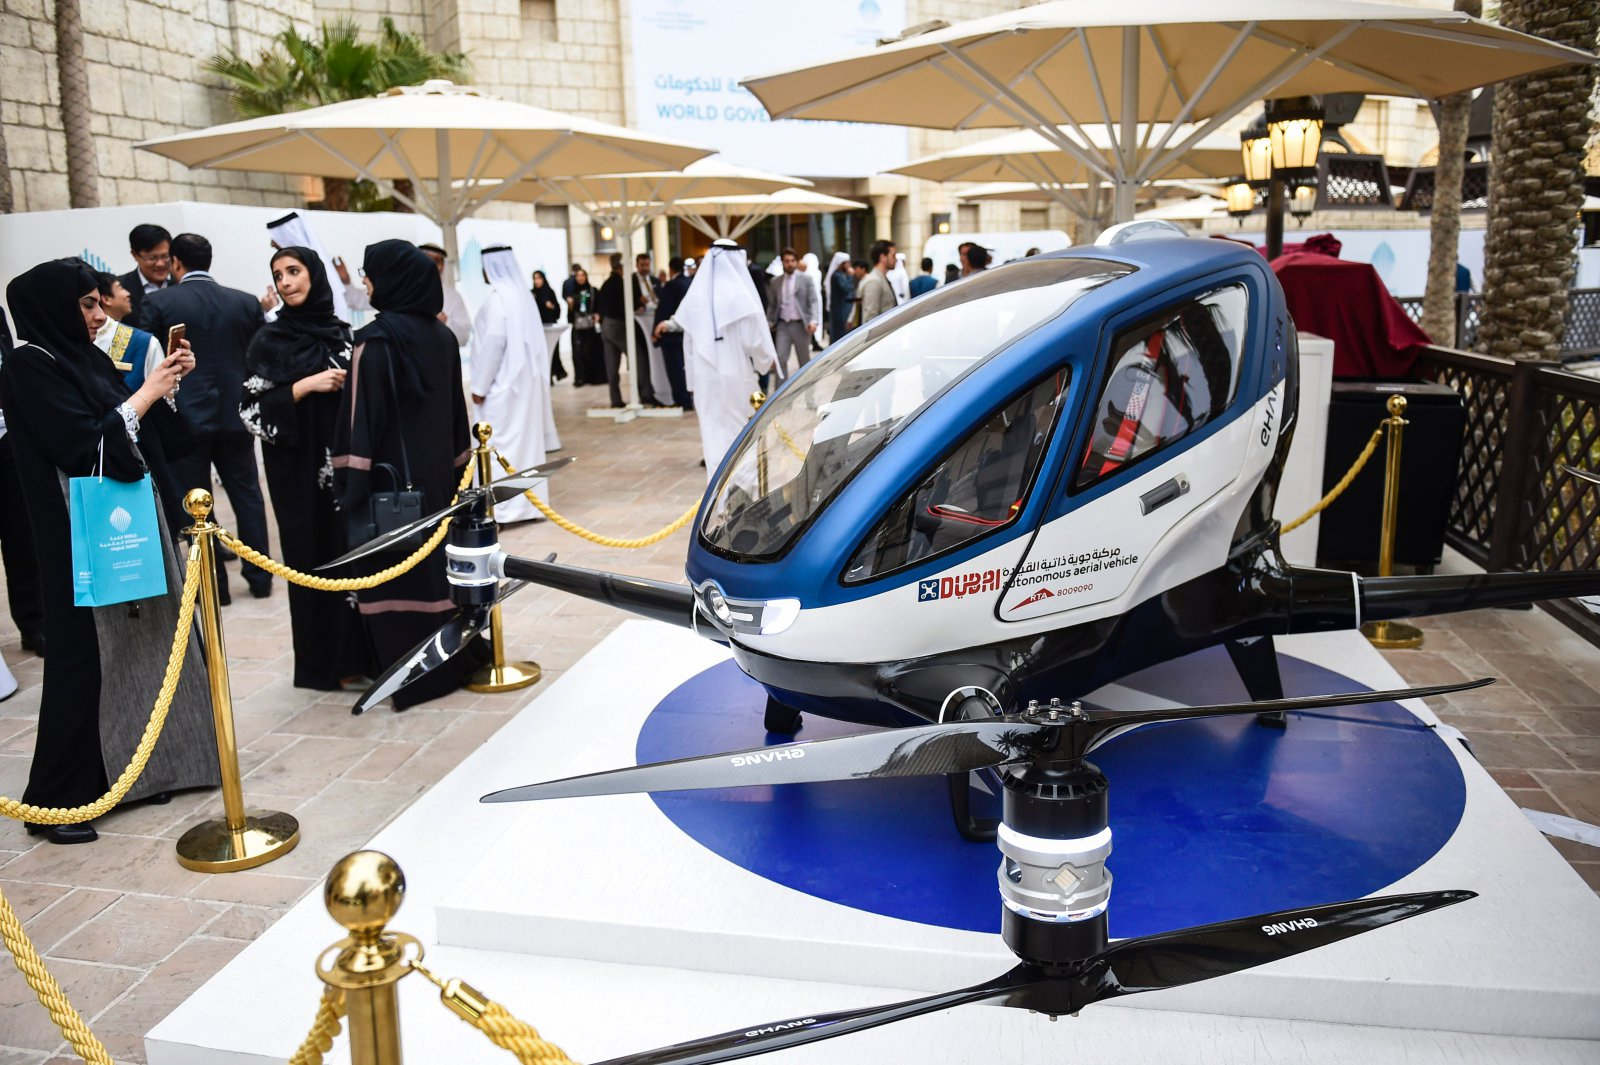 Flying Car For Sale Now >> Dubai to have Flying Drone Taxis - Dubai Blog